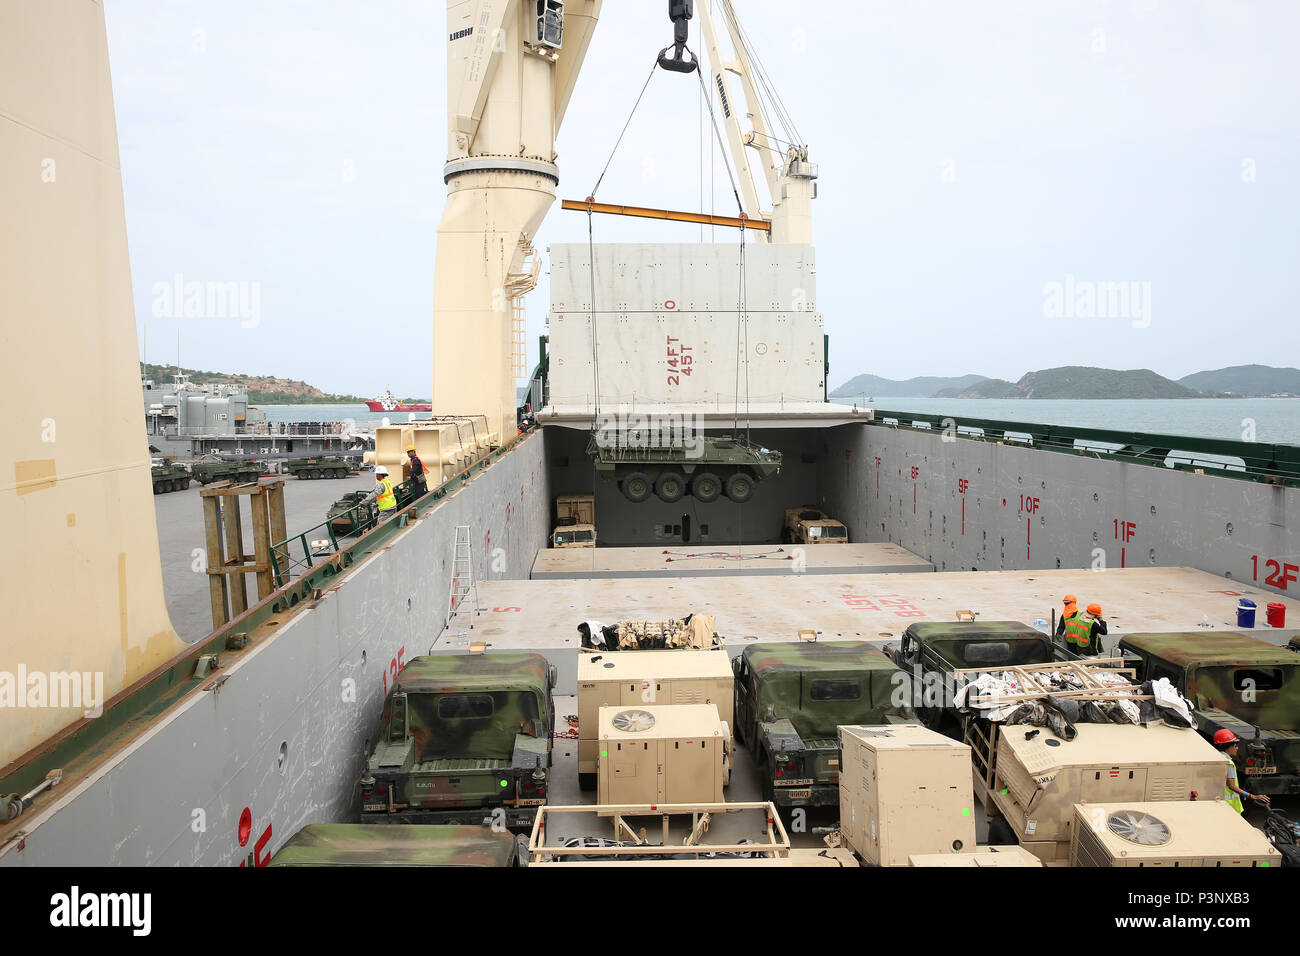 160712-N-IX266-002 SATTAHIP, Thailand—An M1126 Stryker is lowered into general purpose, heavy lift ship MV OCEAN GLORY during a backload of equipment at Chuk Samet, here, from exercise Hanuman Guardian, July 12. Military Sealift Command's contracted voyage-charter MV OCEAN GLORY recently conducted a backload of about 250 items in Thailand as part of U.S. Army Pacific's mobility operation PACIFIC PATHWAYS 16-2. (U.S. Navy photo by Grady T. Fontana/Released) - Stock Image